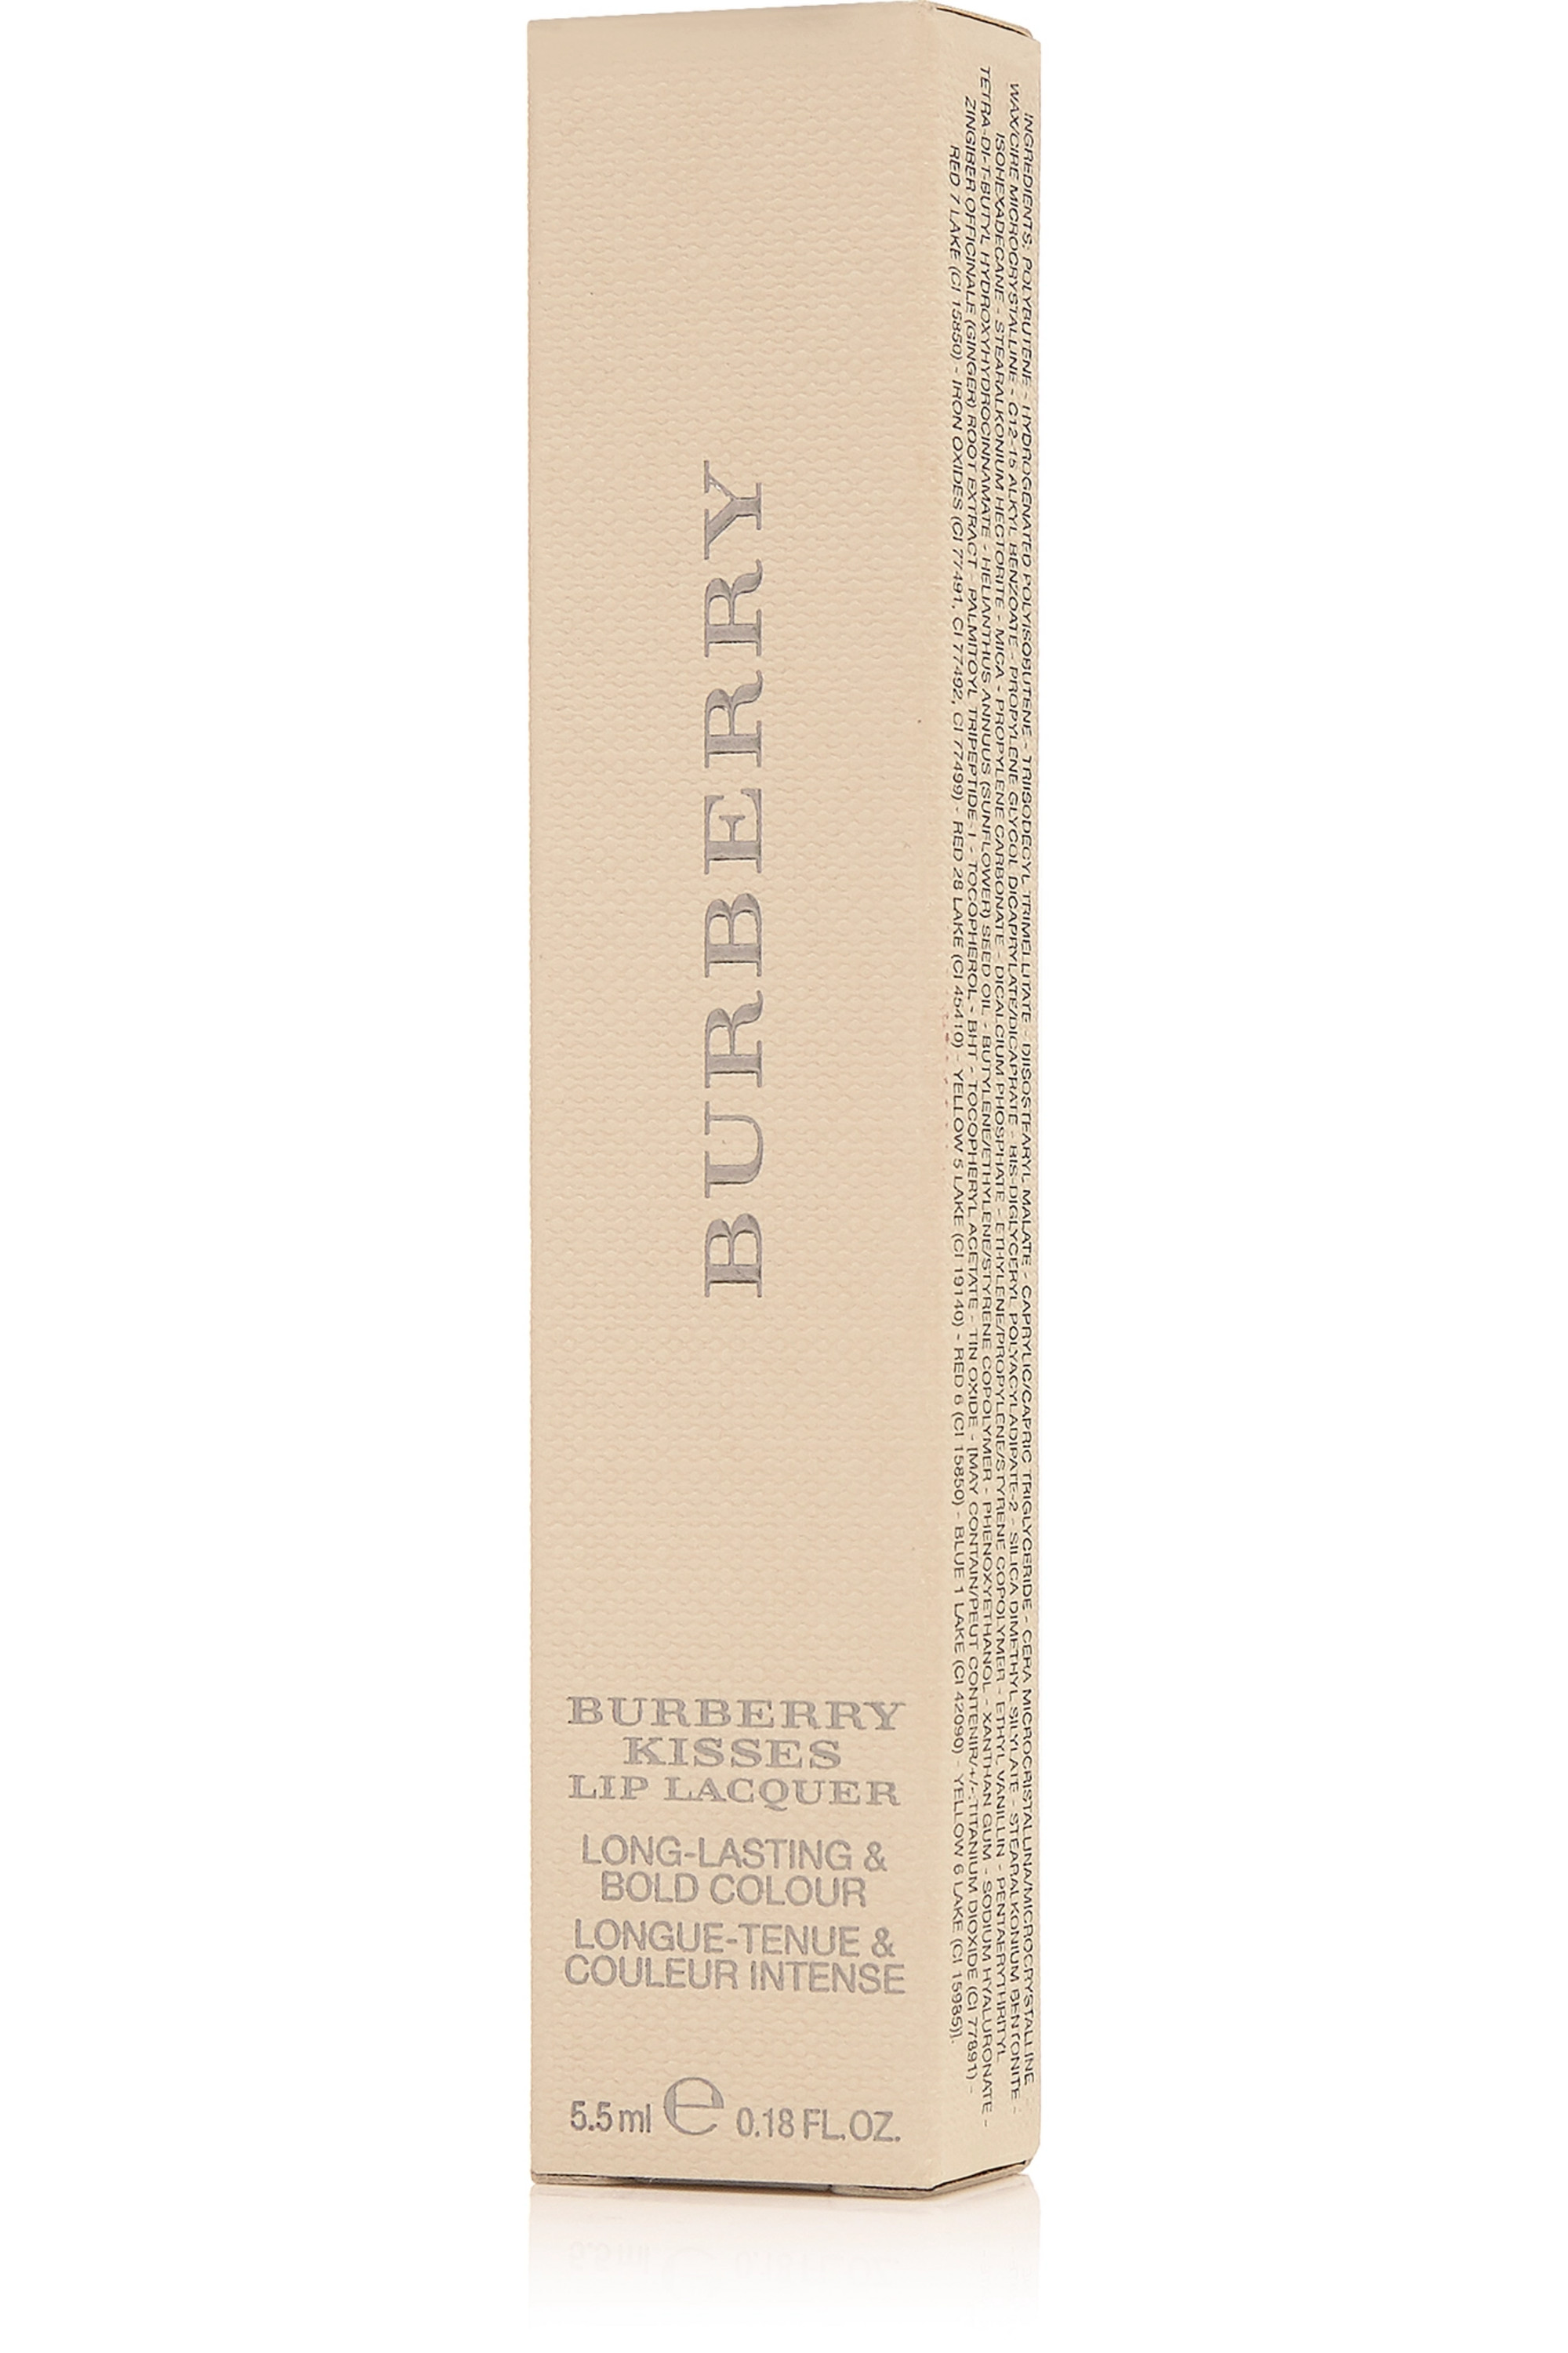 Burberry Beauty Burberry Kisses Lip Lacquer - Dark Russet No.45